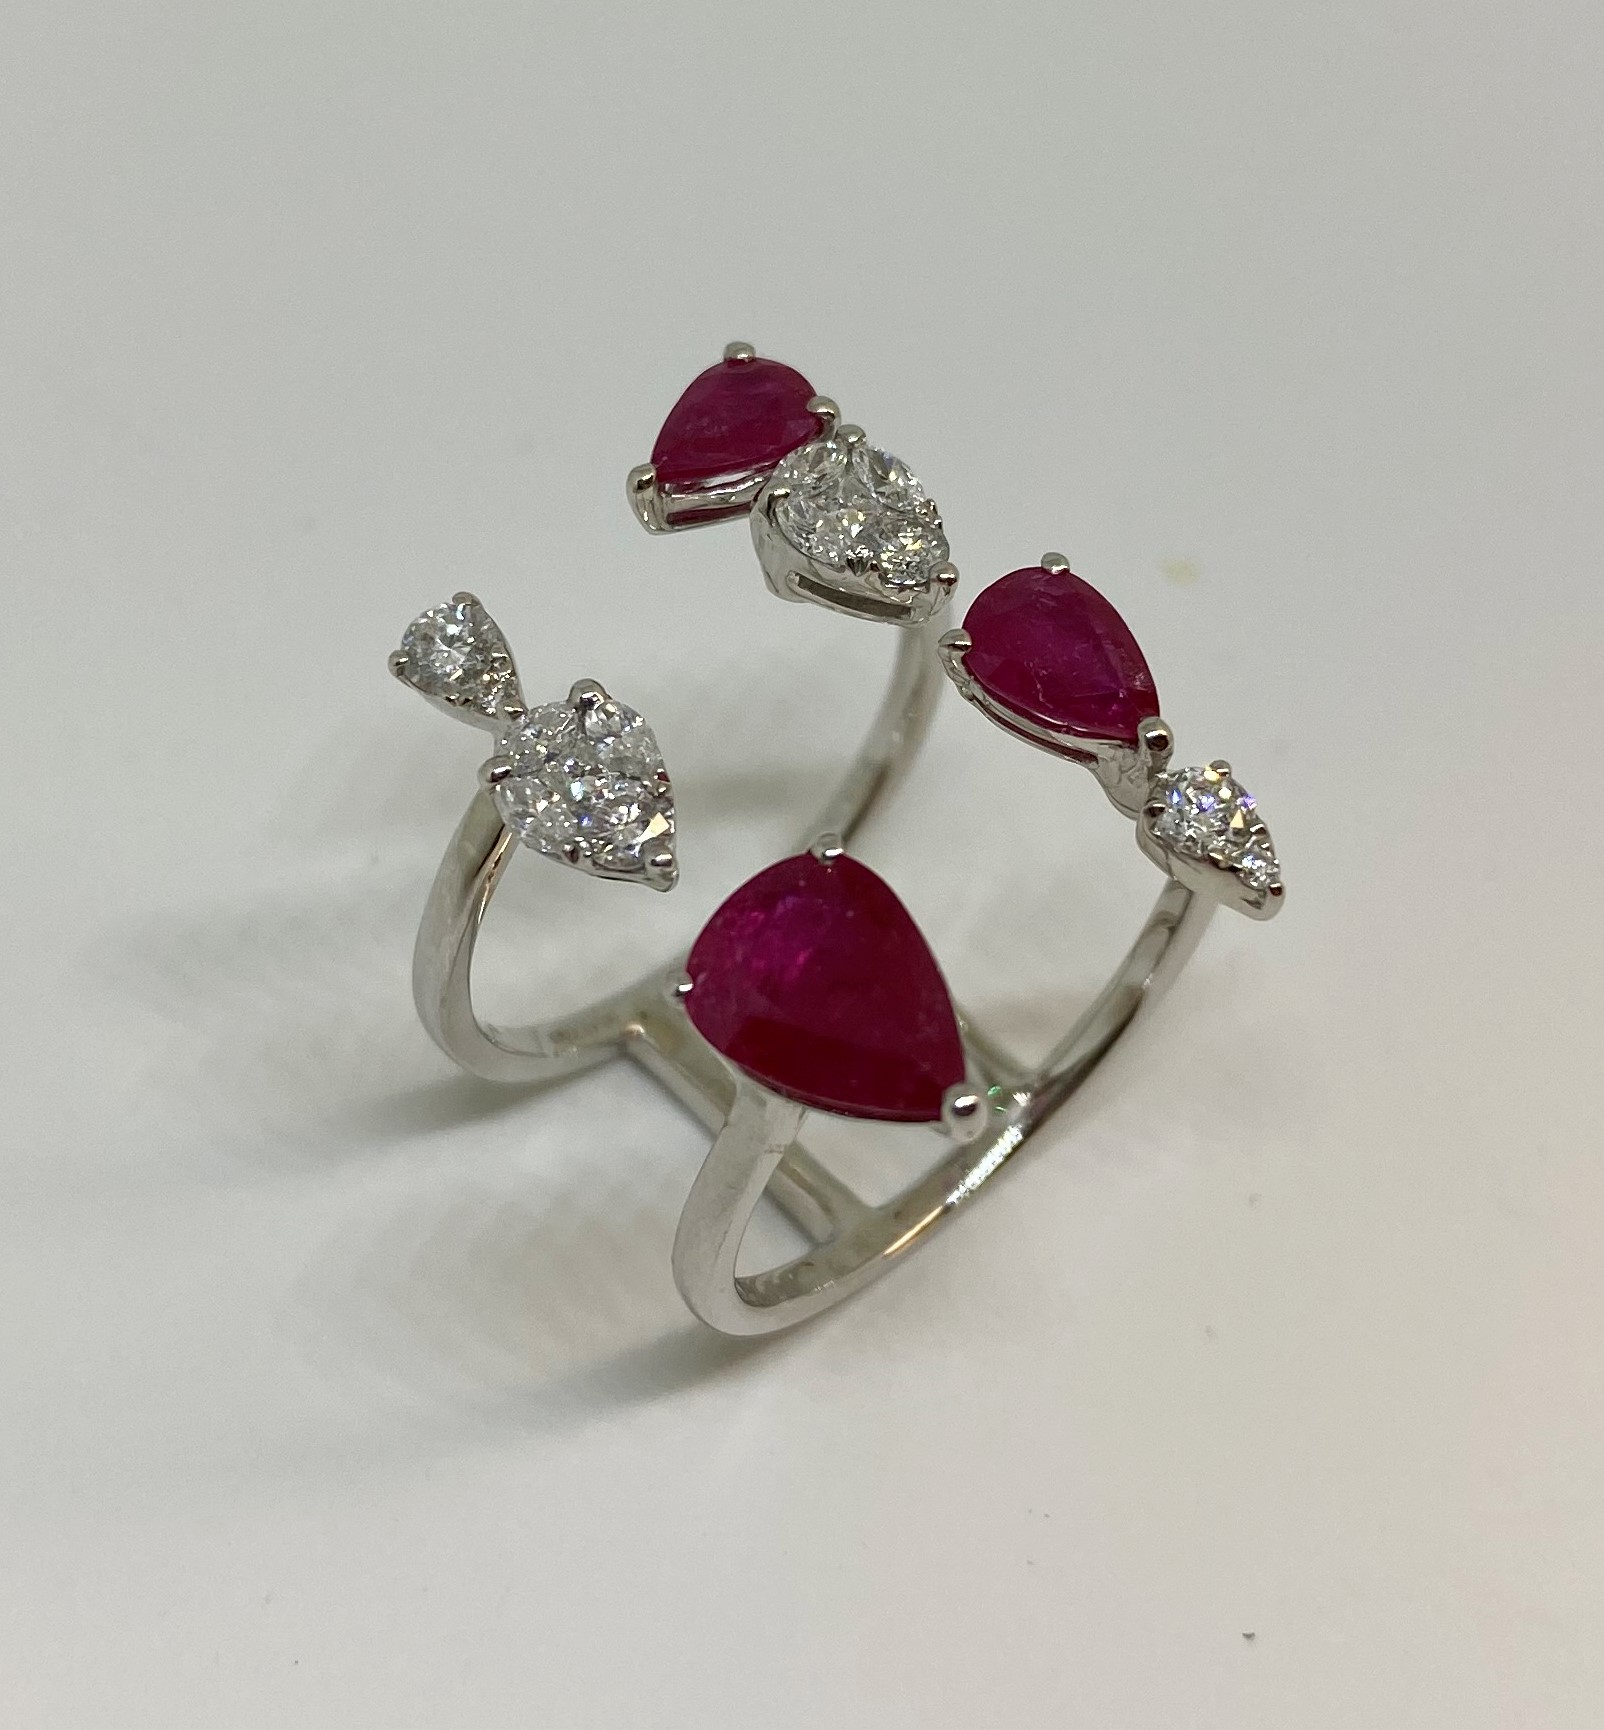 2 Carats Ruby Open Ring In White Gold